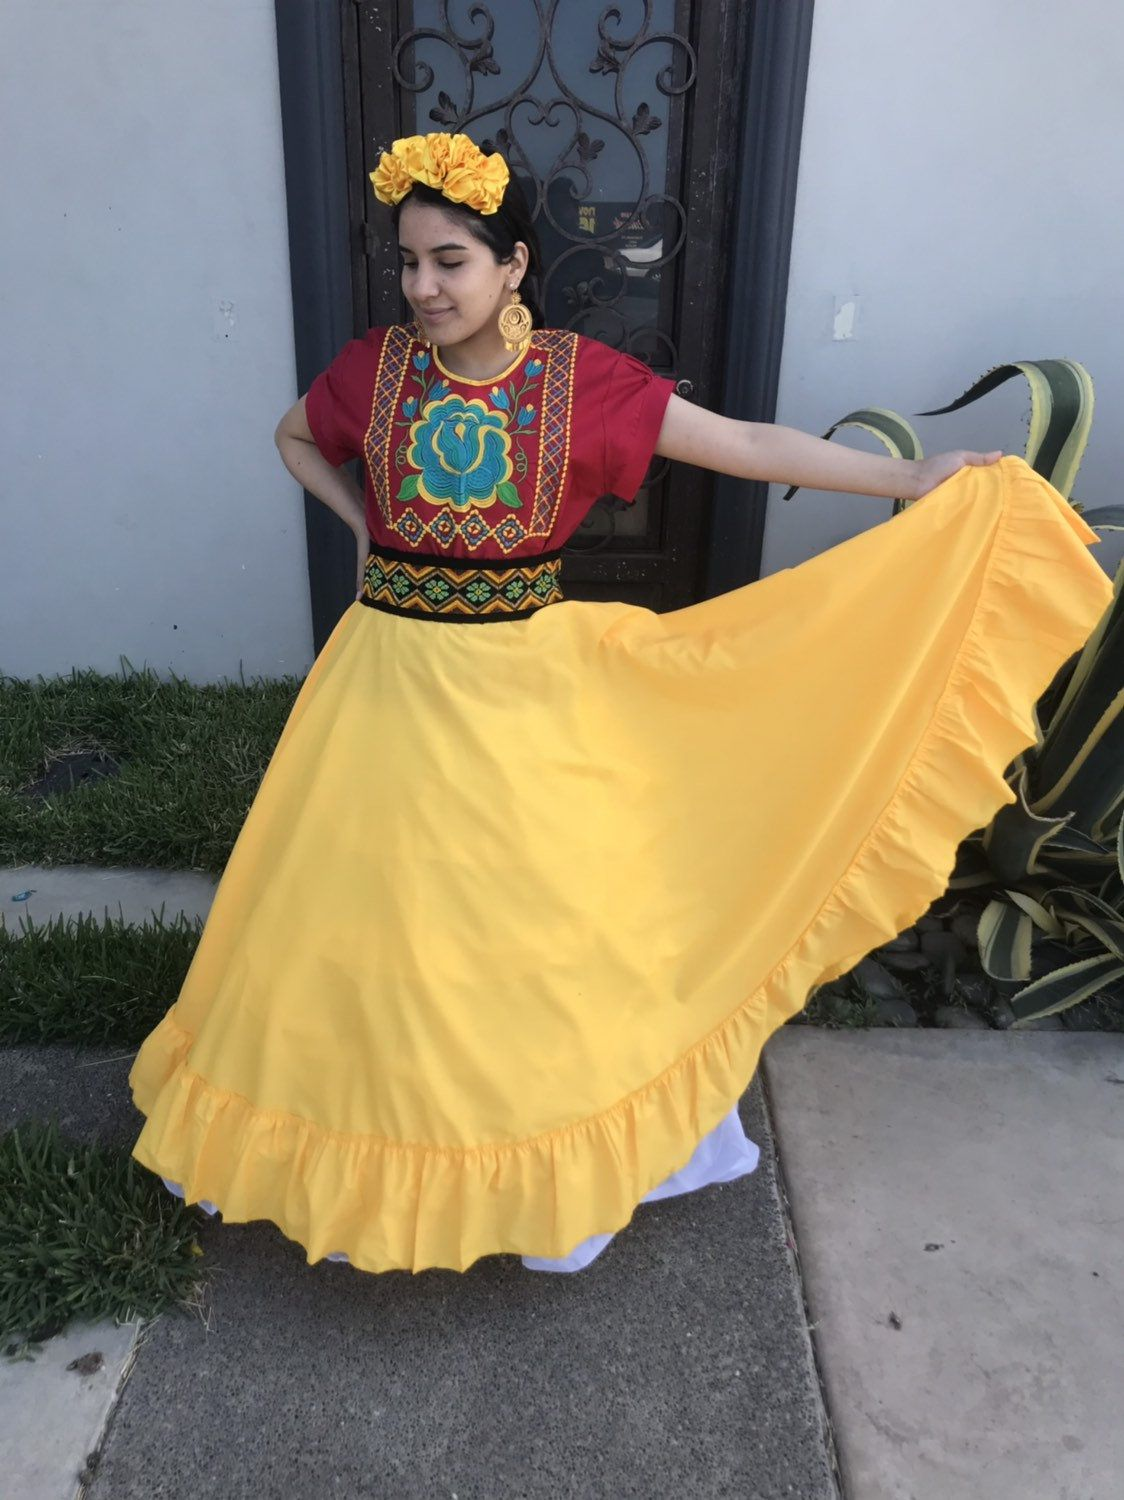 Mexican Yellow Skirt Handmade Beautiful Frida Kahlo Style Etsy In 2021 Frida Kahlo Style Yellow Skirt Mexican Outfit [ 1500 x 1124 Pixel ]